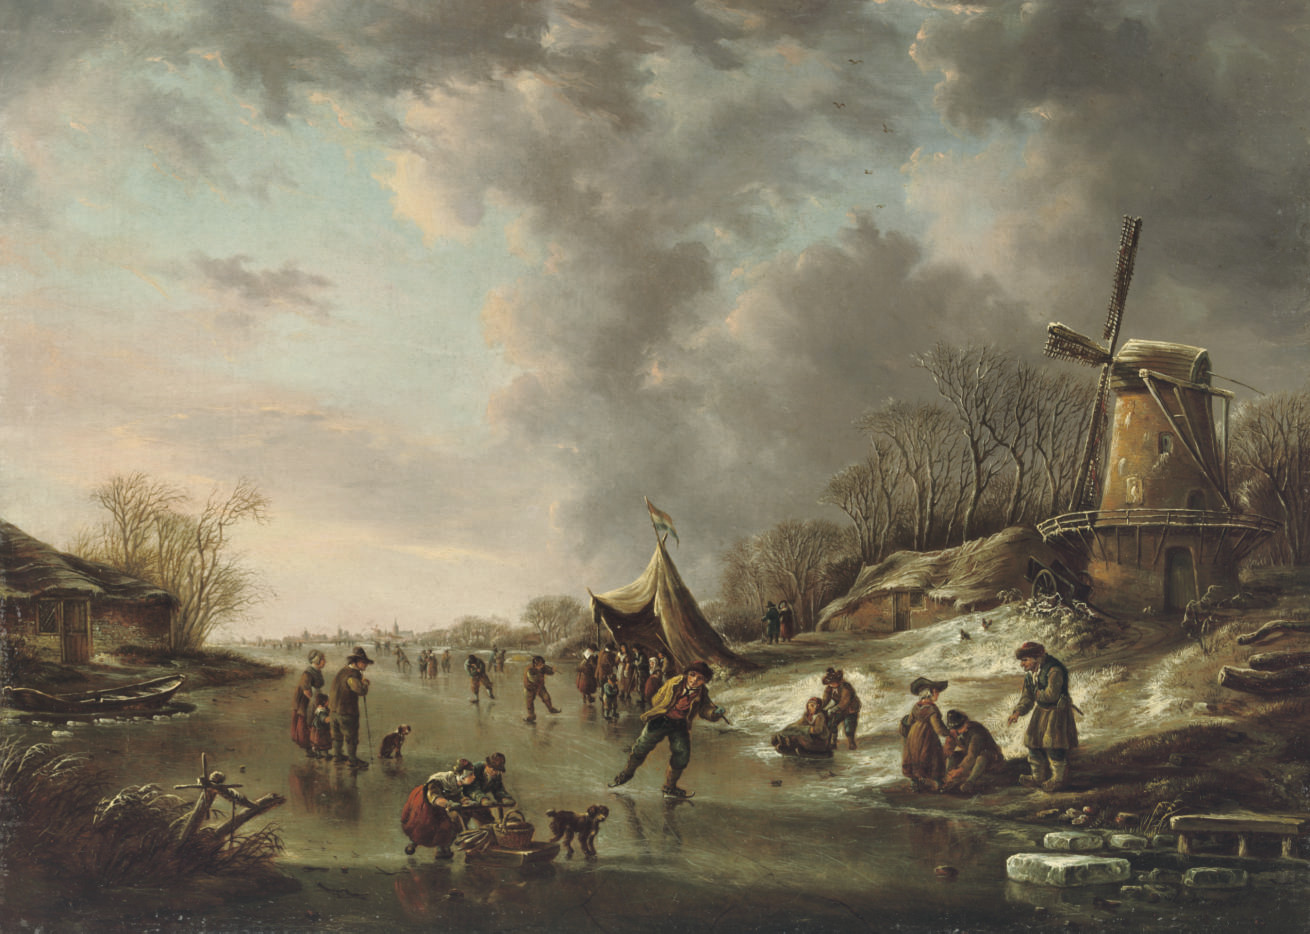 A winter landscape with figures skating on a frozen river